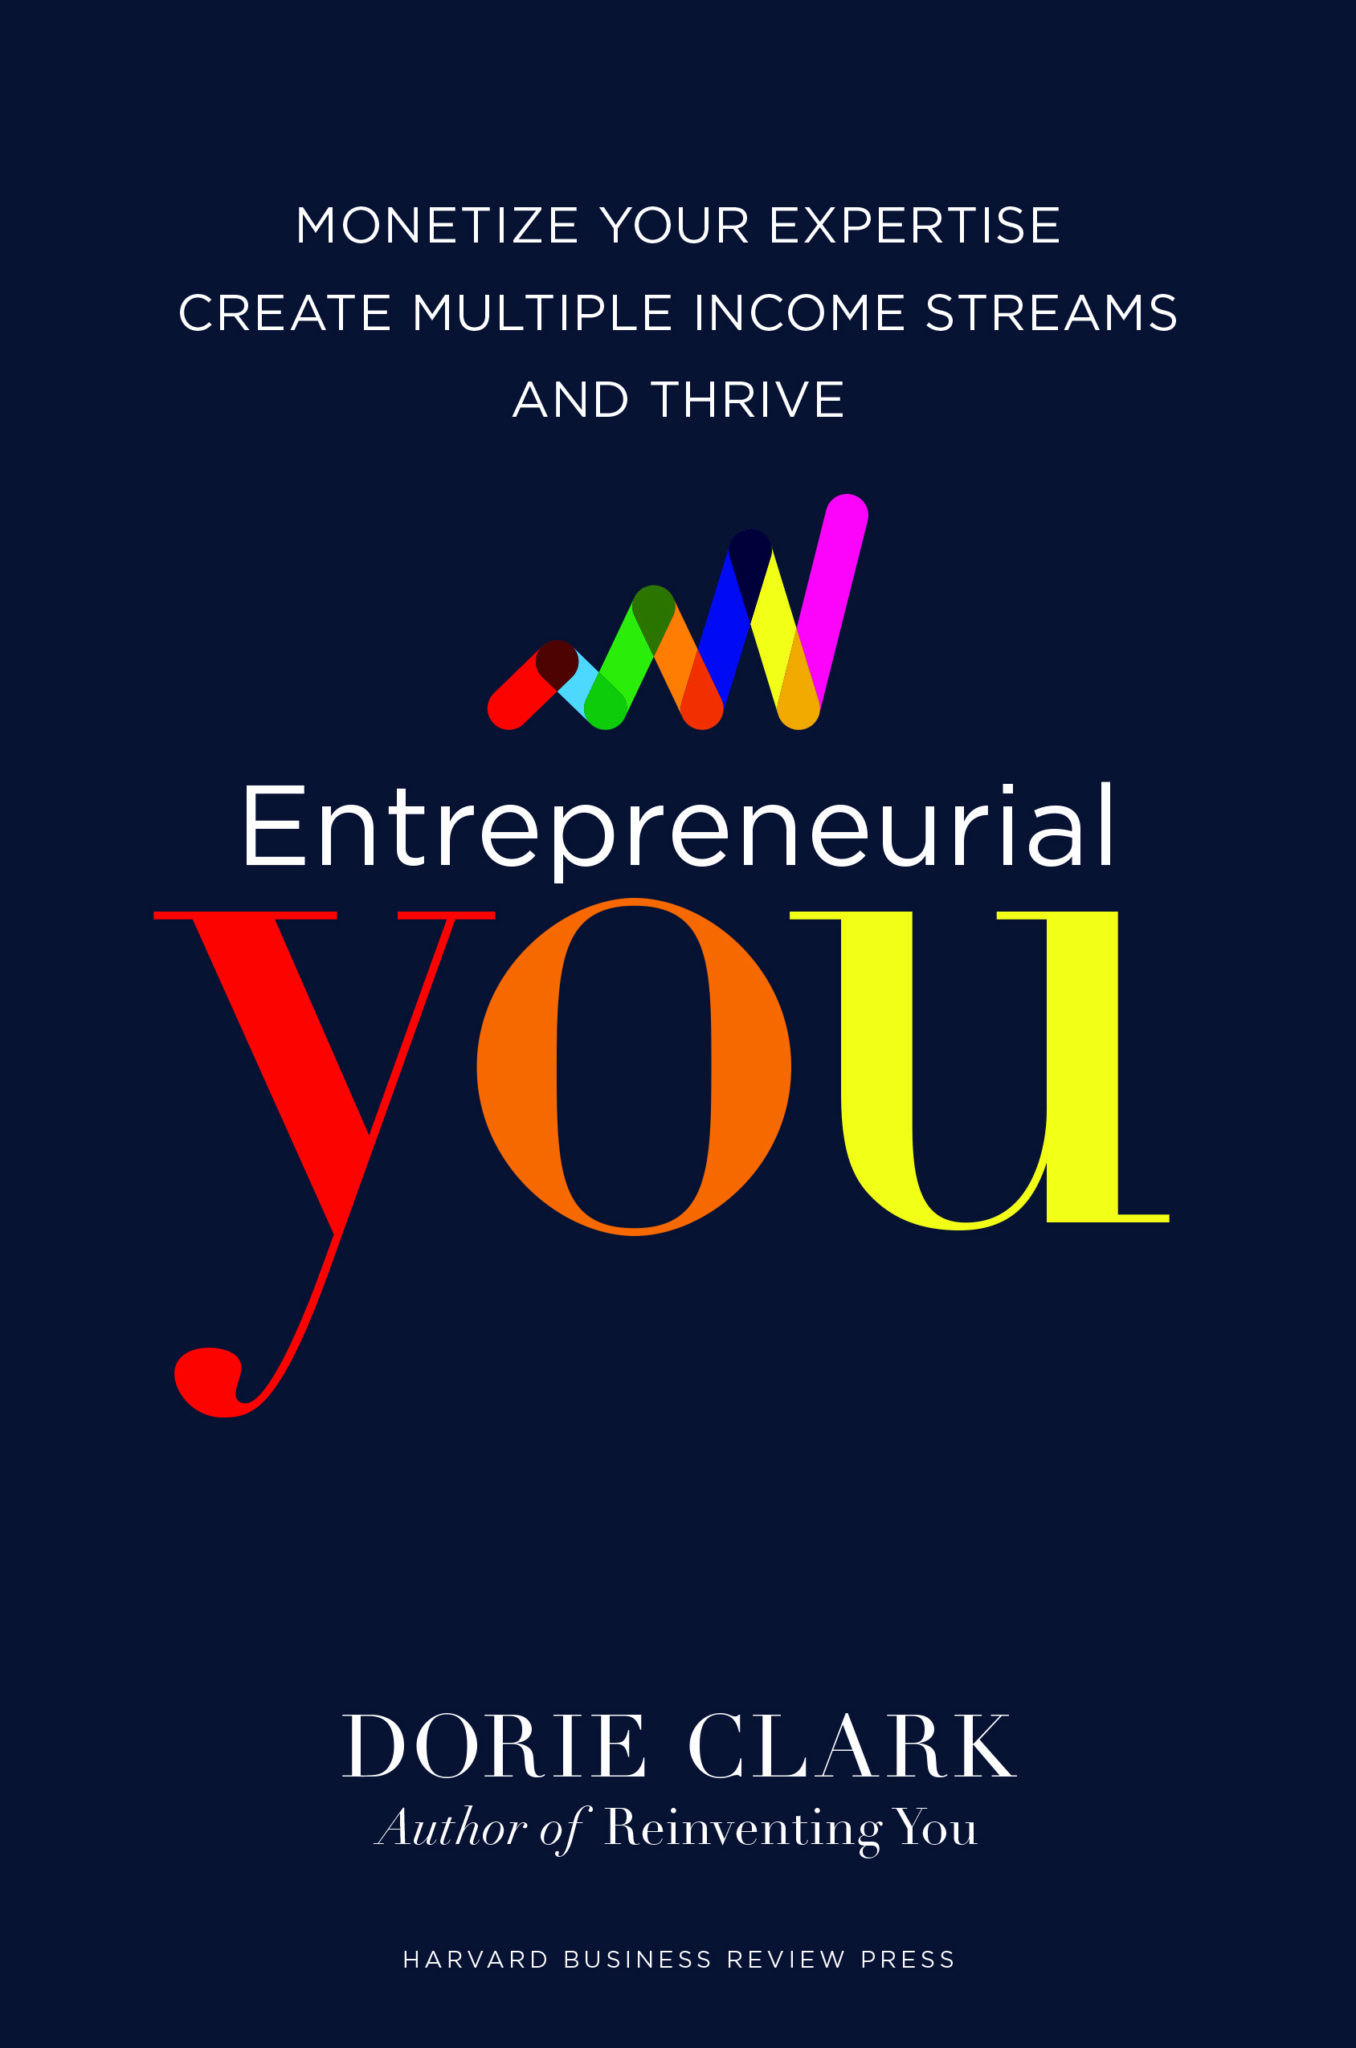 ENTREPRENEURIAL YOU: Monetize Your Expertise, Create Multiple Income Streams, and Thrive.